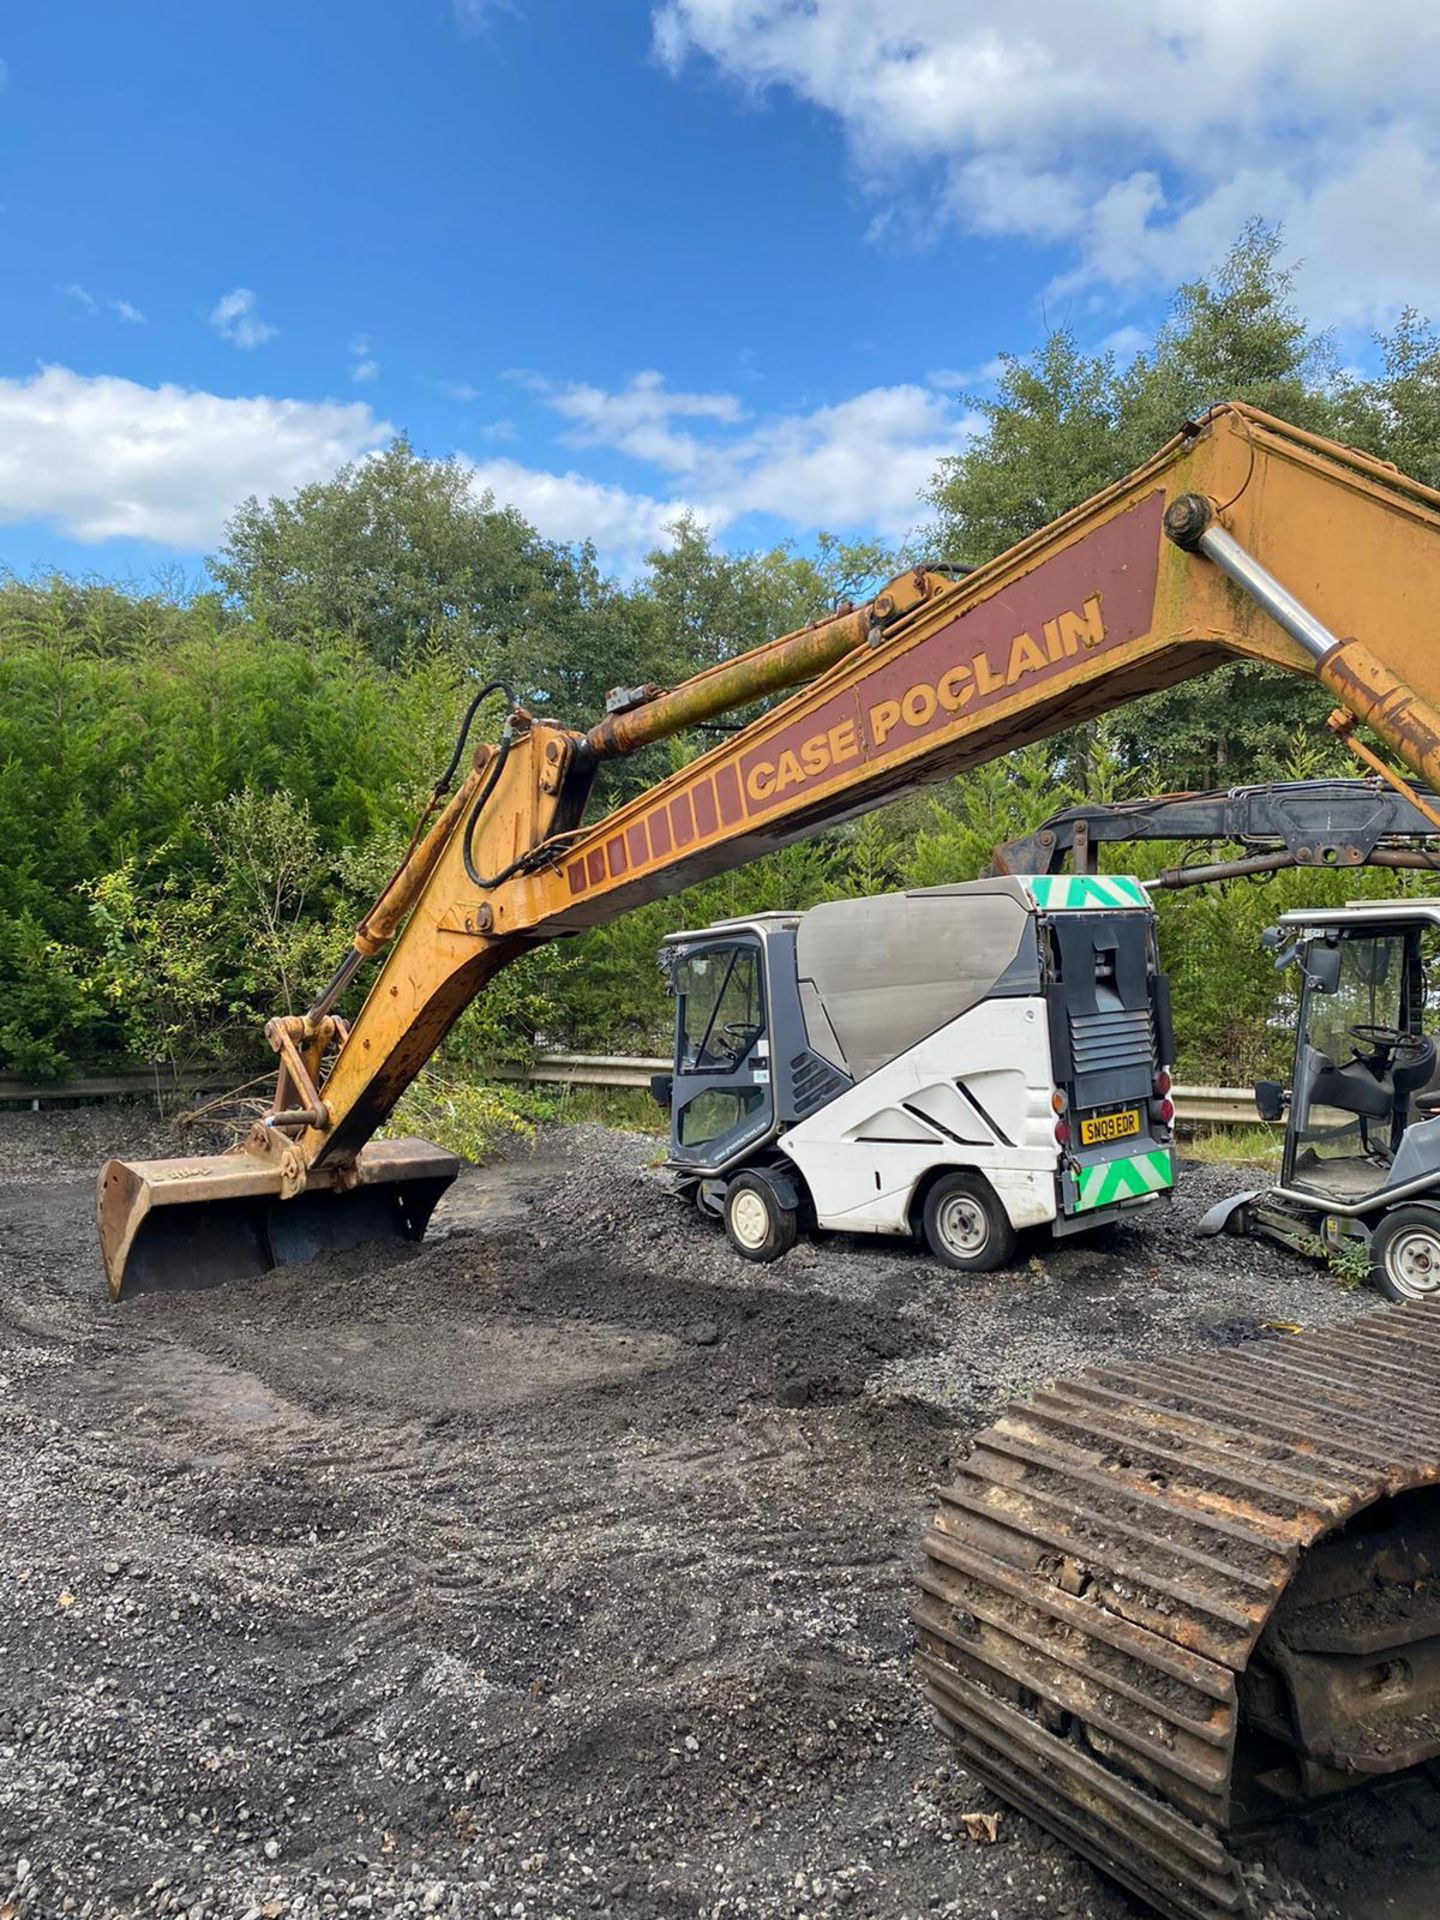 Lot 51 - CASE POCLAIN 1088 STEEL TRACKED EXCAVATOR / DIGGER, RUNS, DRIVES AND DIGS *PLUS VAT*